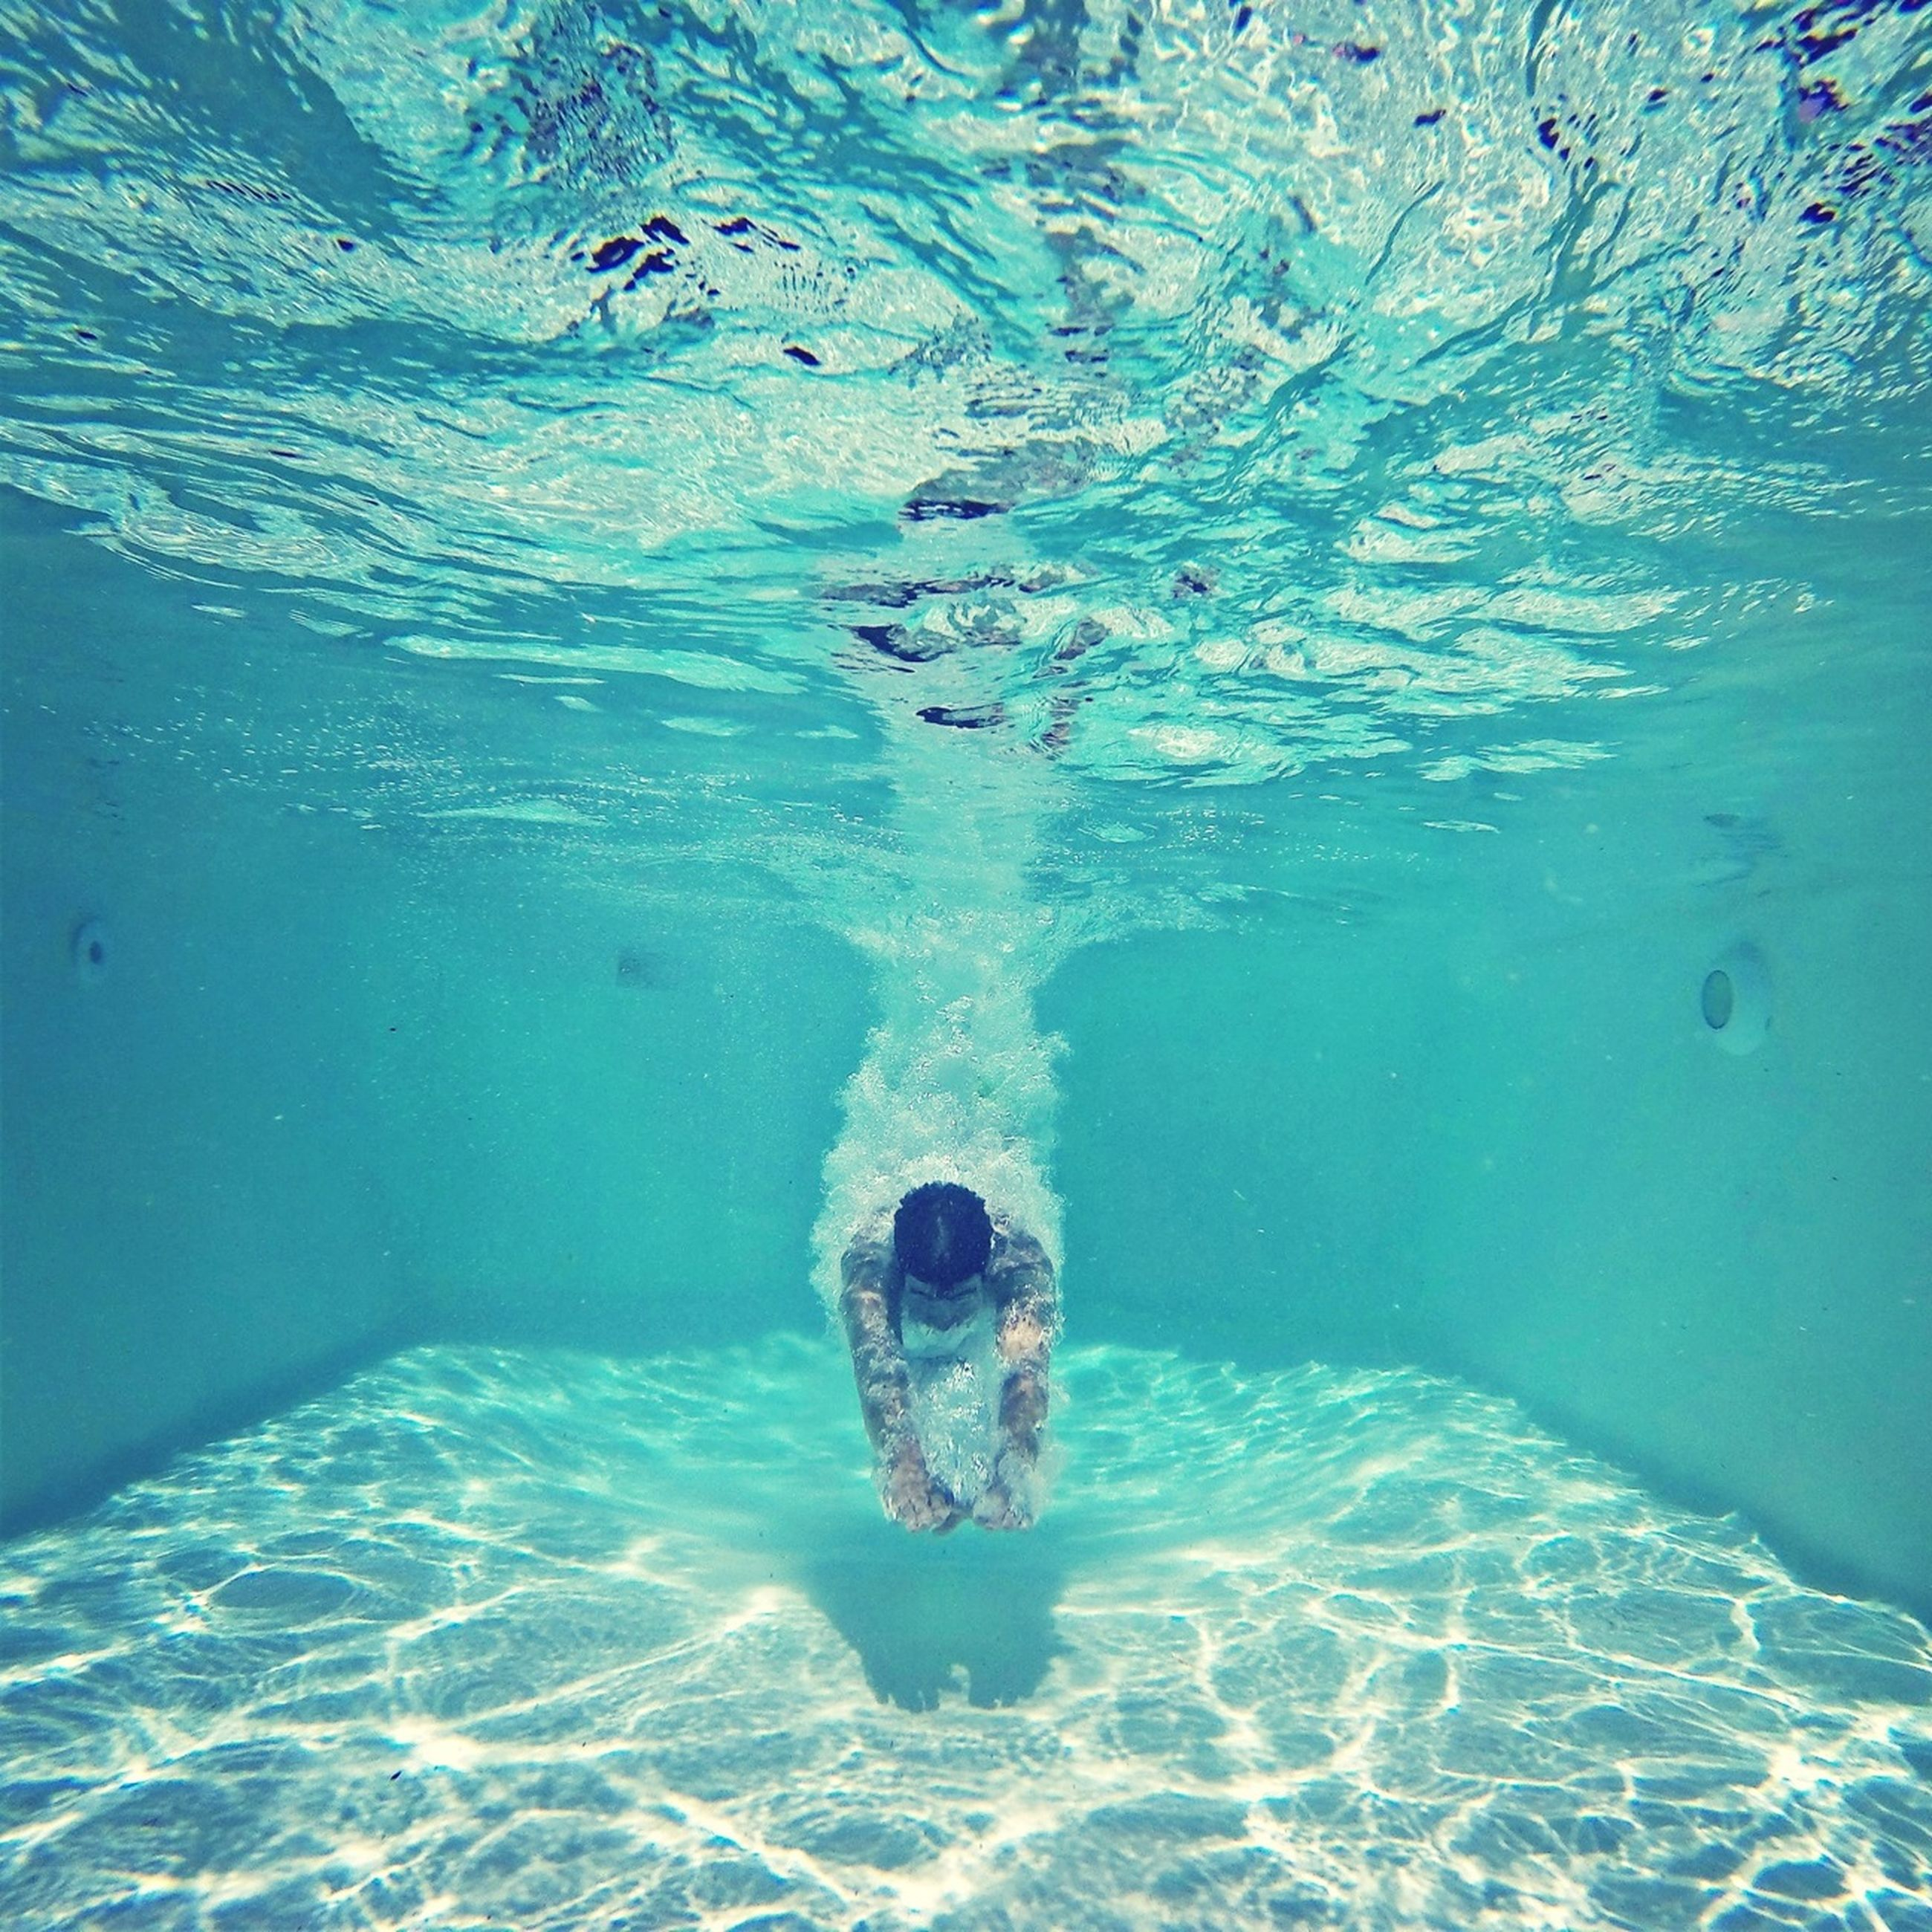 water, blue, swimming, high angle view, swimming pool, underwater, waterfront, turquoise colored, sea, animal themes, one animal, leisure activity, full length, day, rippled, nature, lifestyles, outdoors